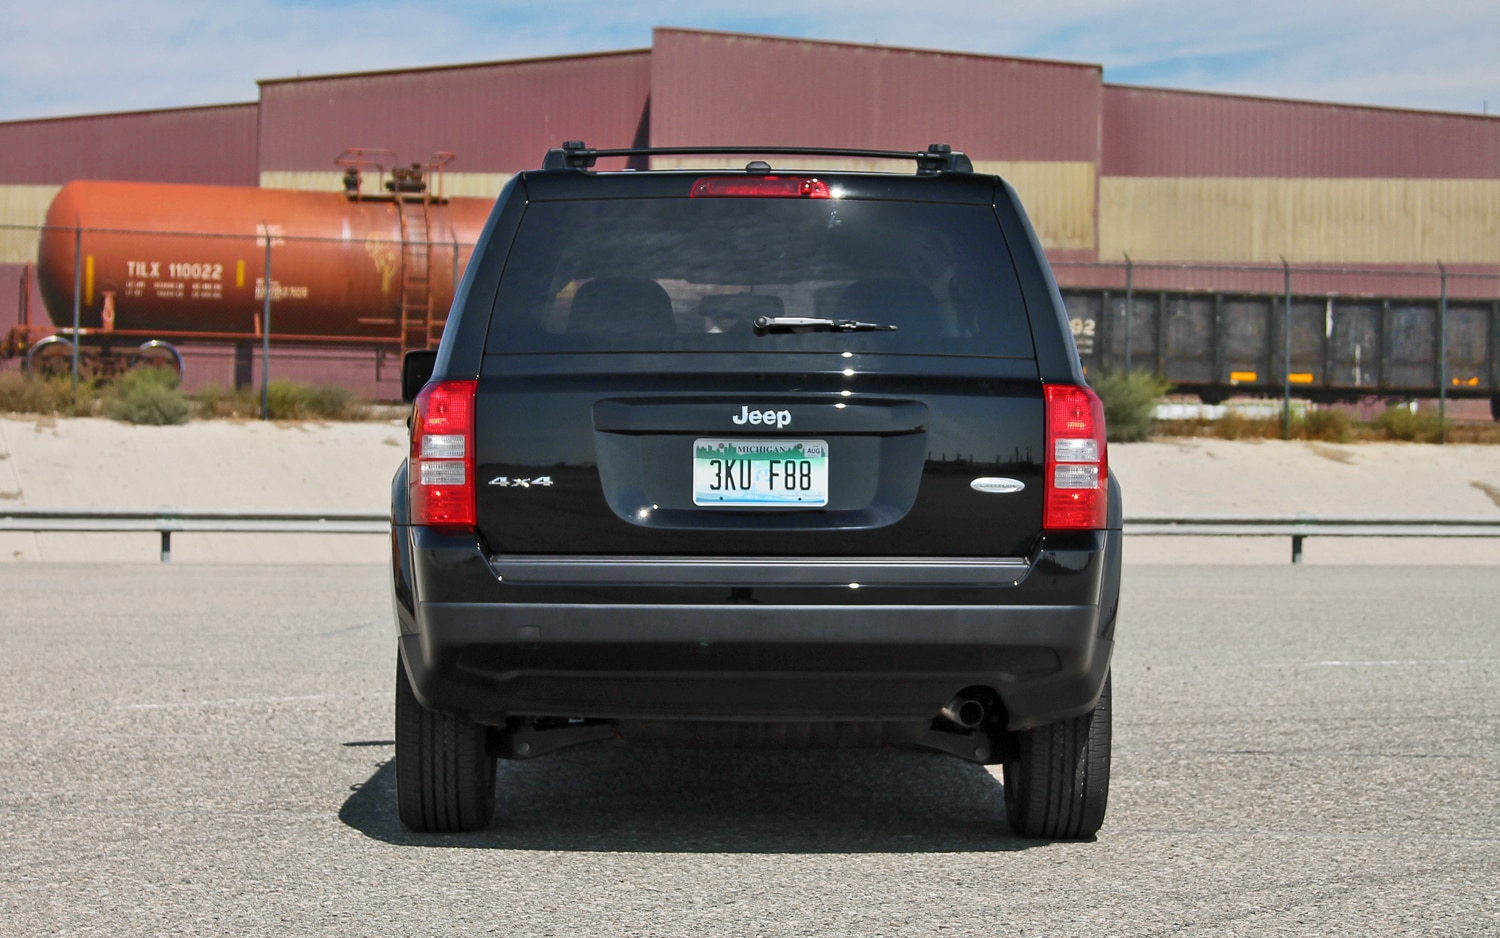 2013 Jeep Patriot Latitude 4X4 Rear View 04